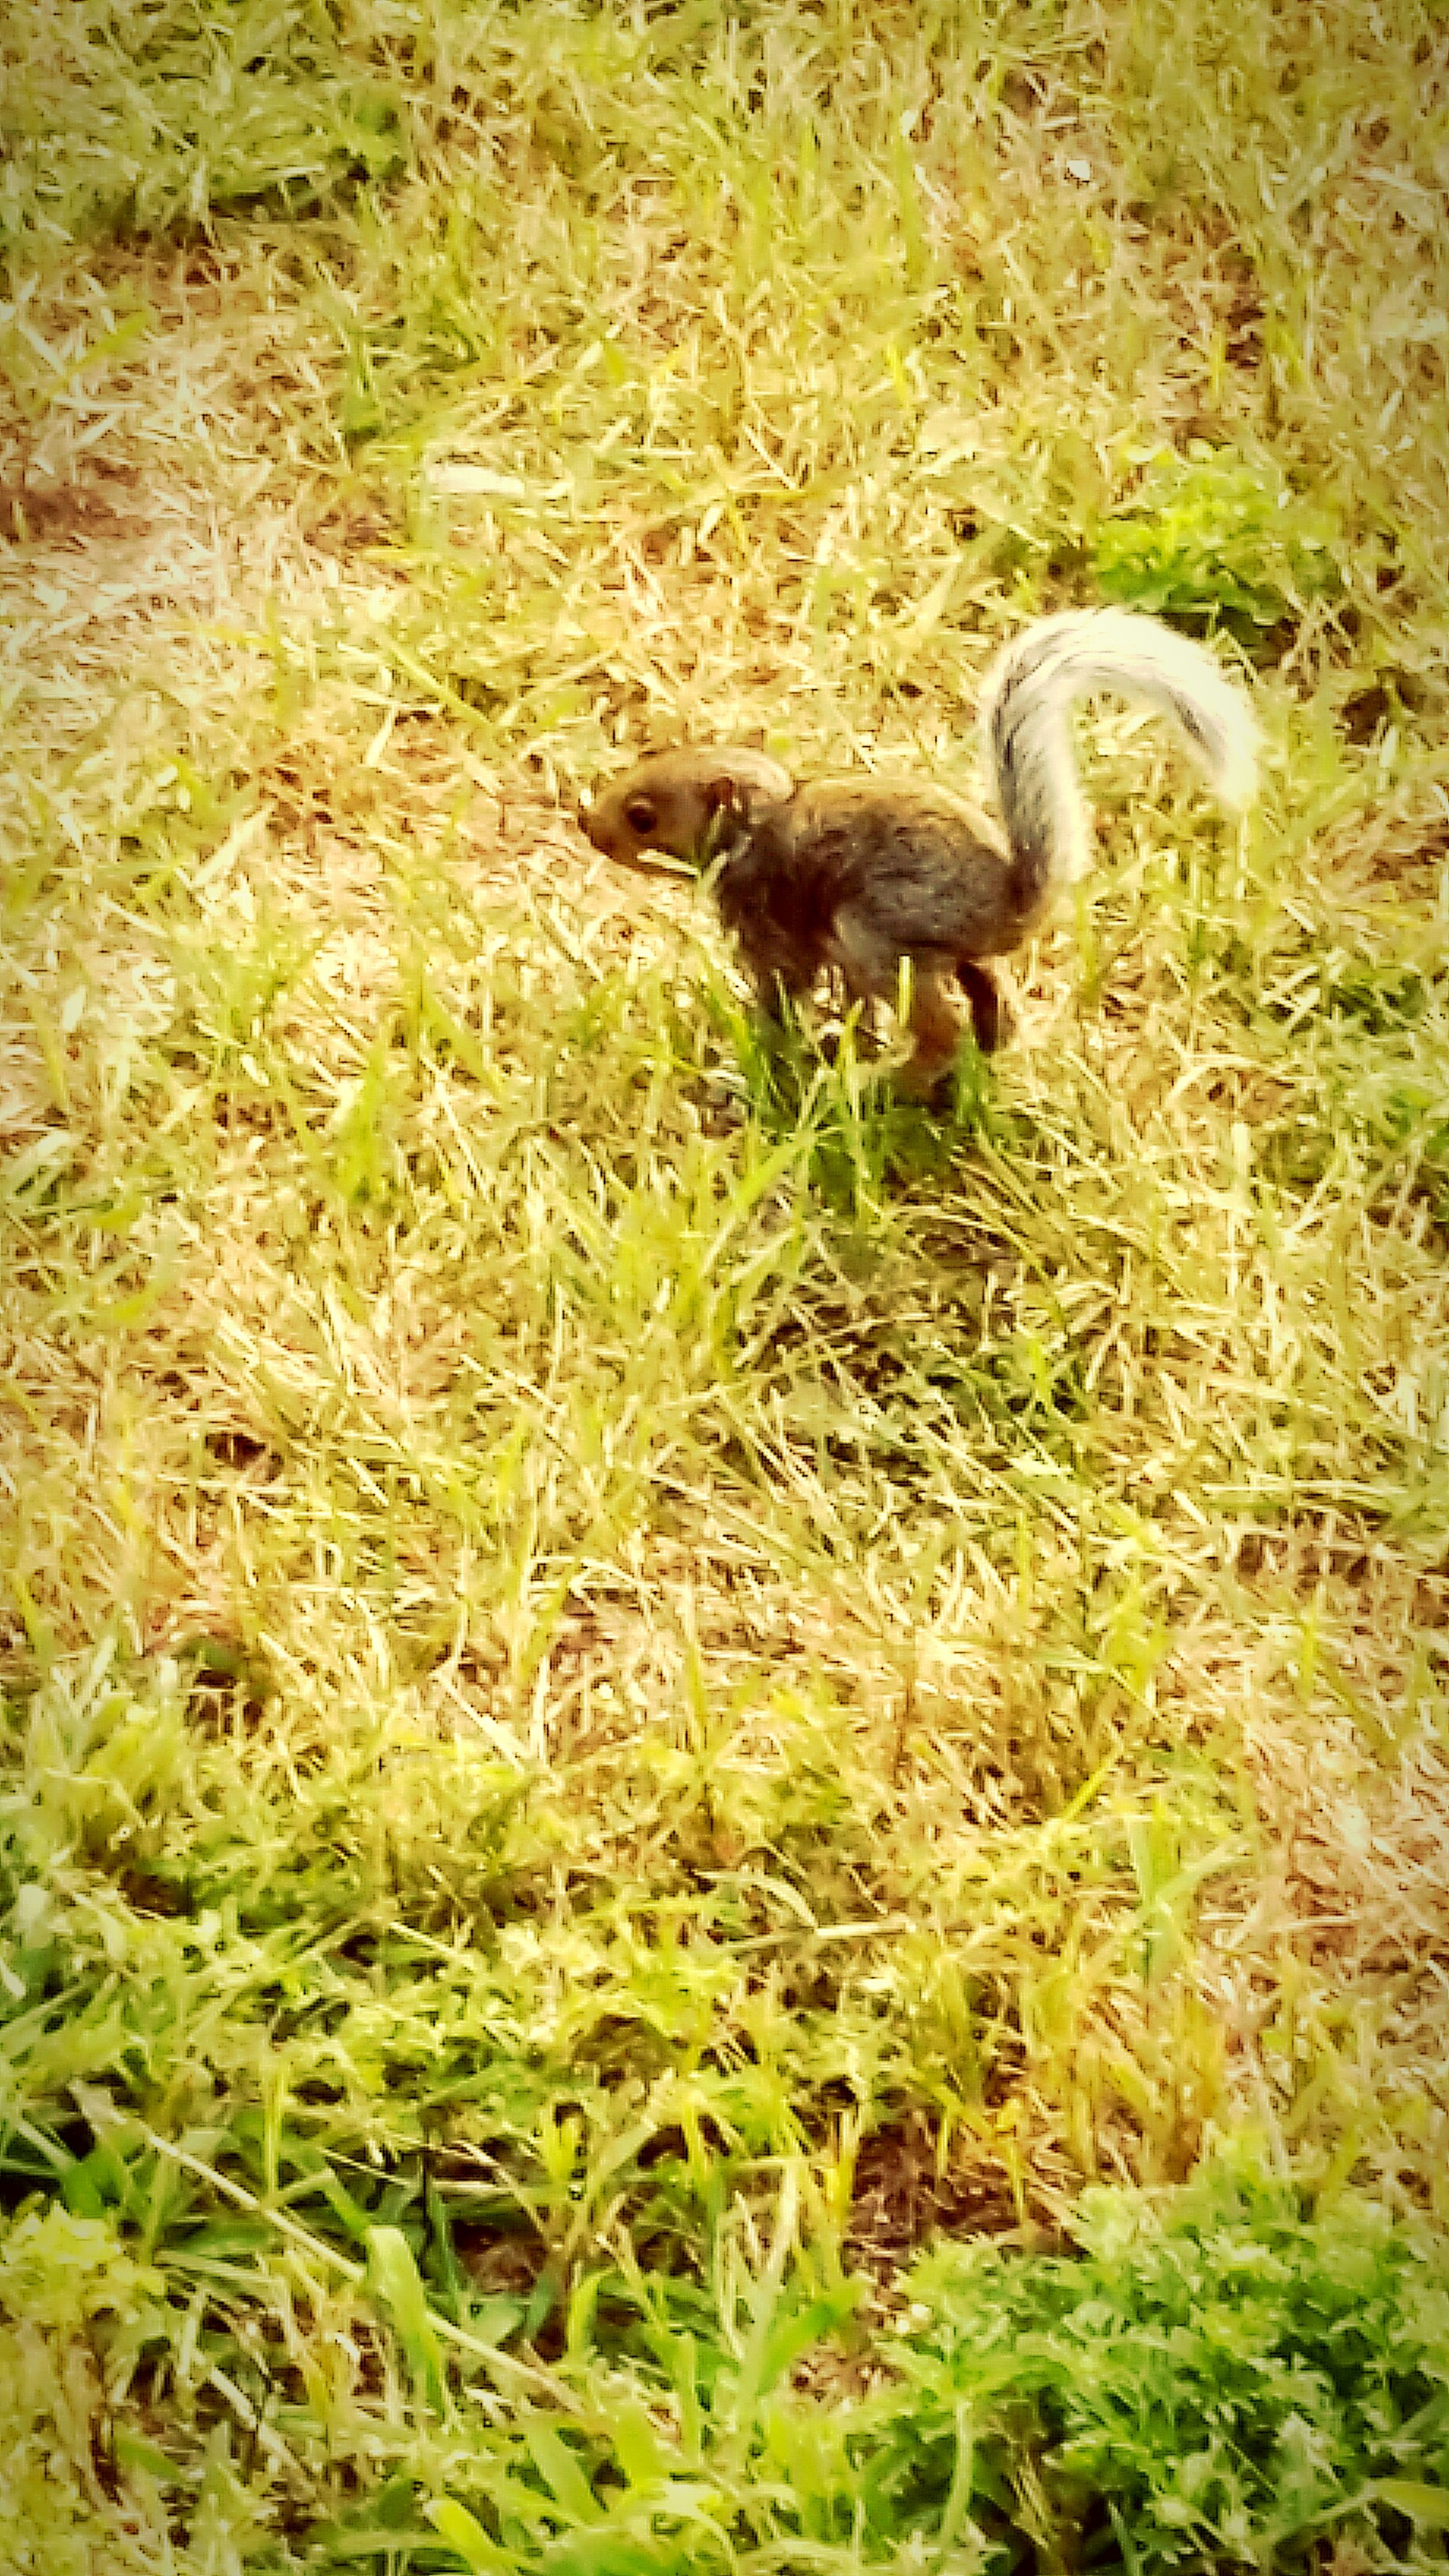 Baby Squirrel Say Cheese=)